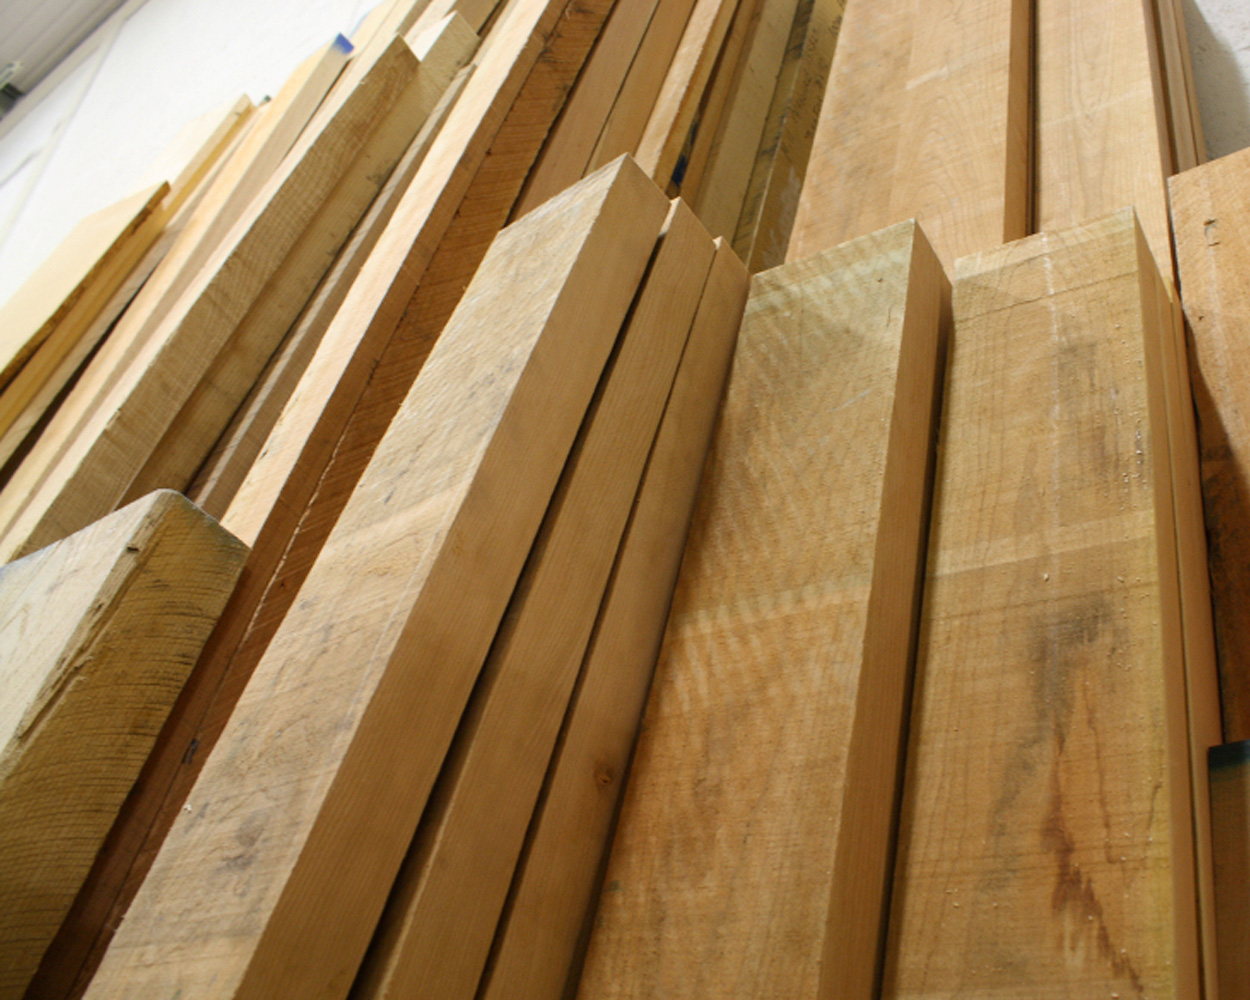 Our Products | Family Owned Timber Merchants in Sunderland